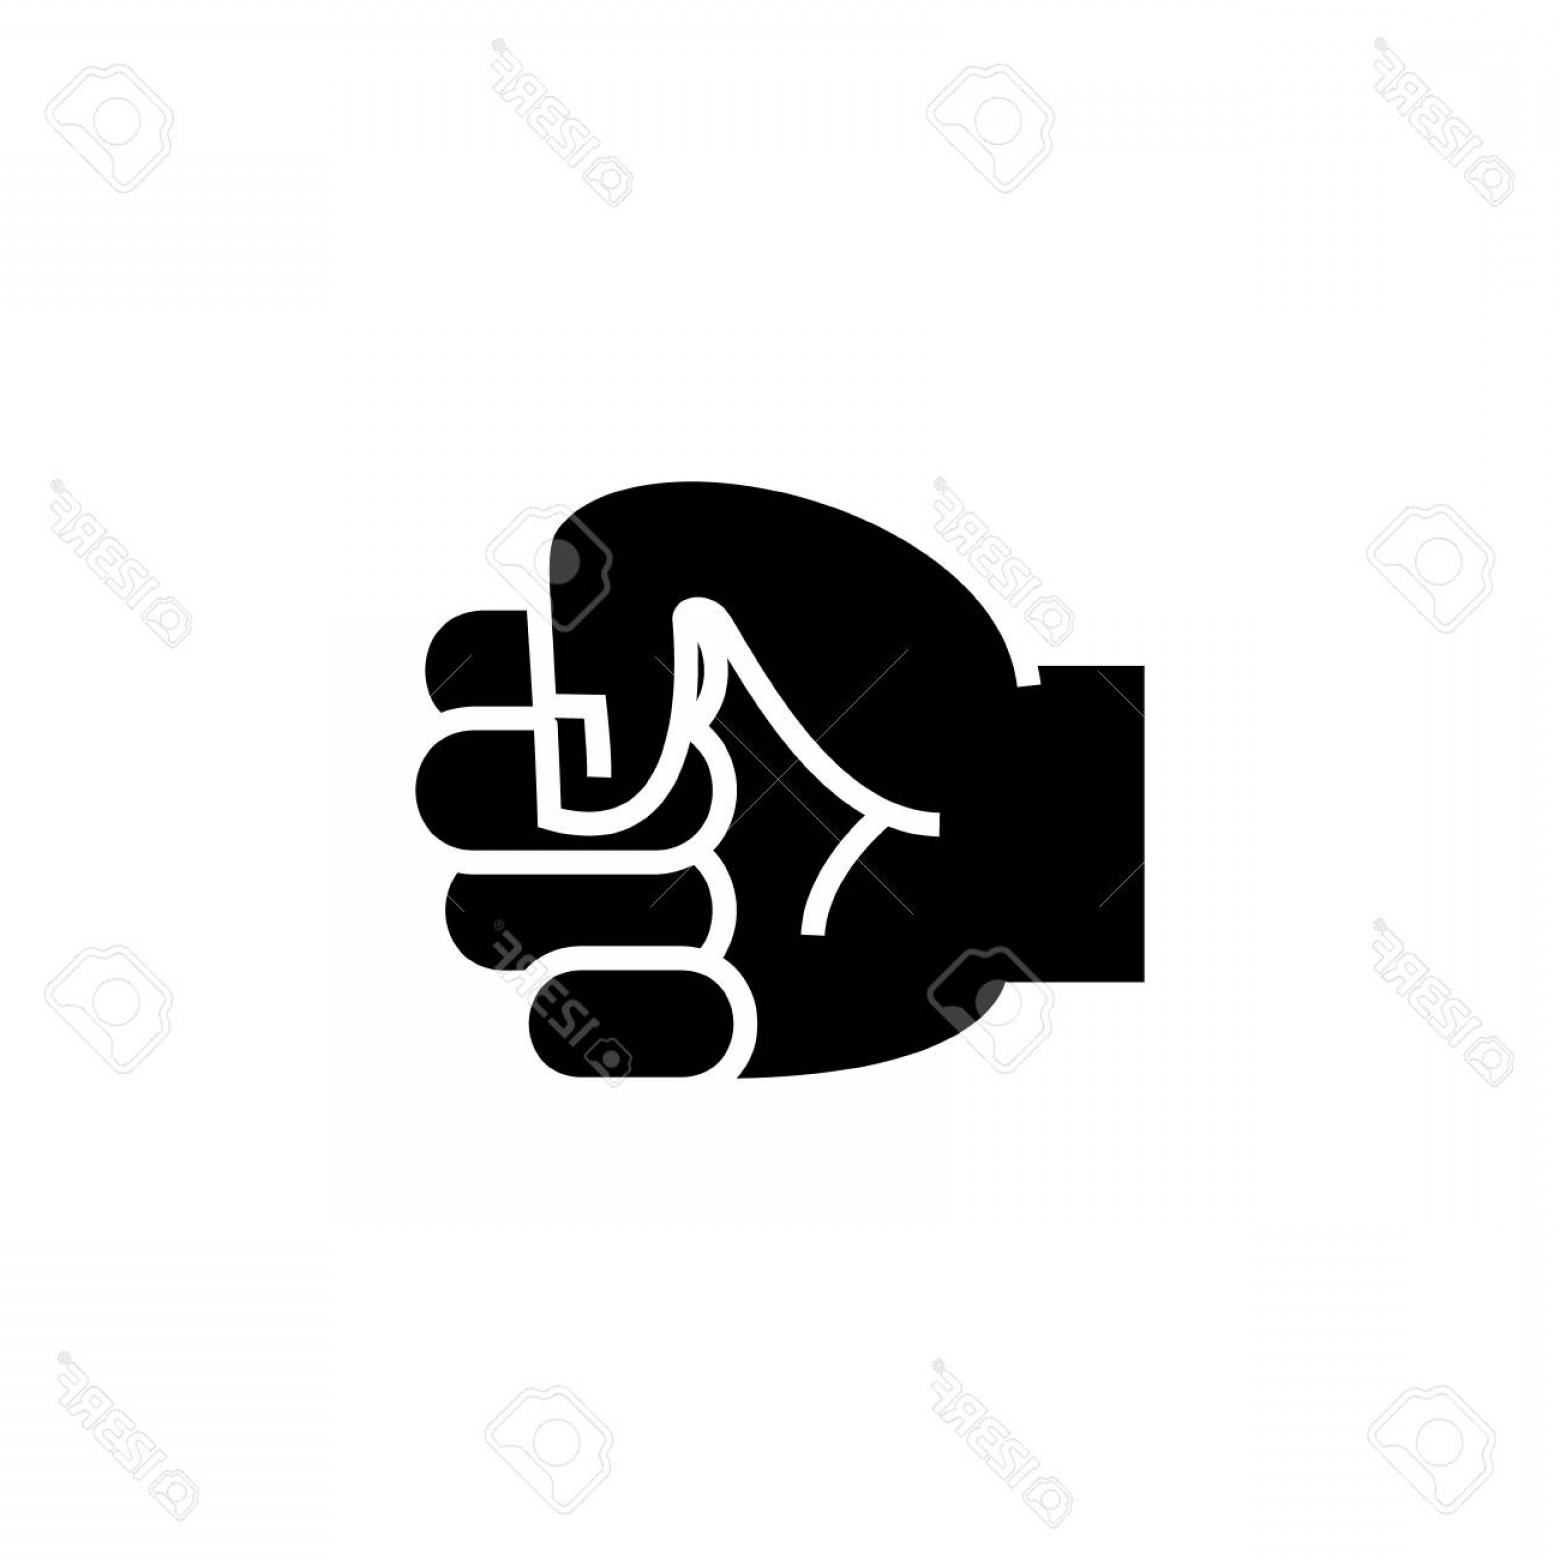 Hand Fist Vector: Photostock Vector Hand Fist Icon Illustration Vector Sign On Isolated Background